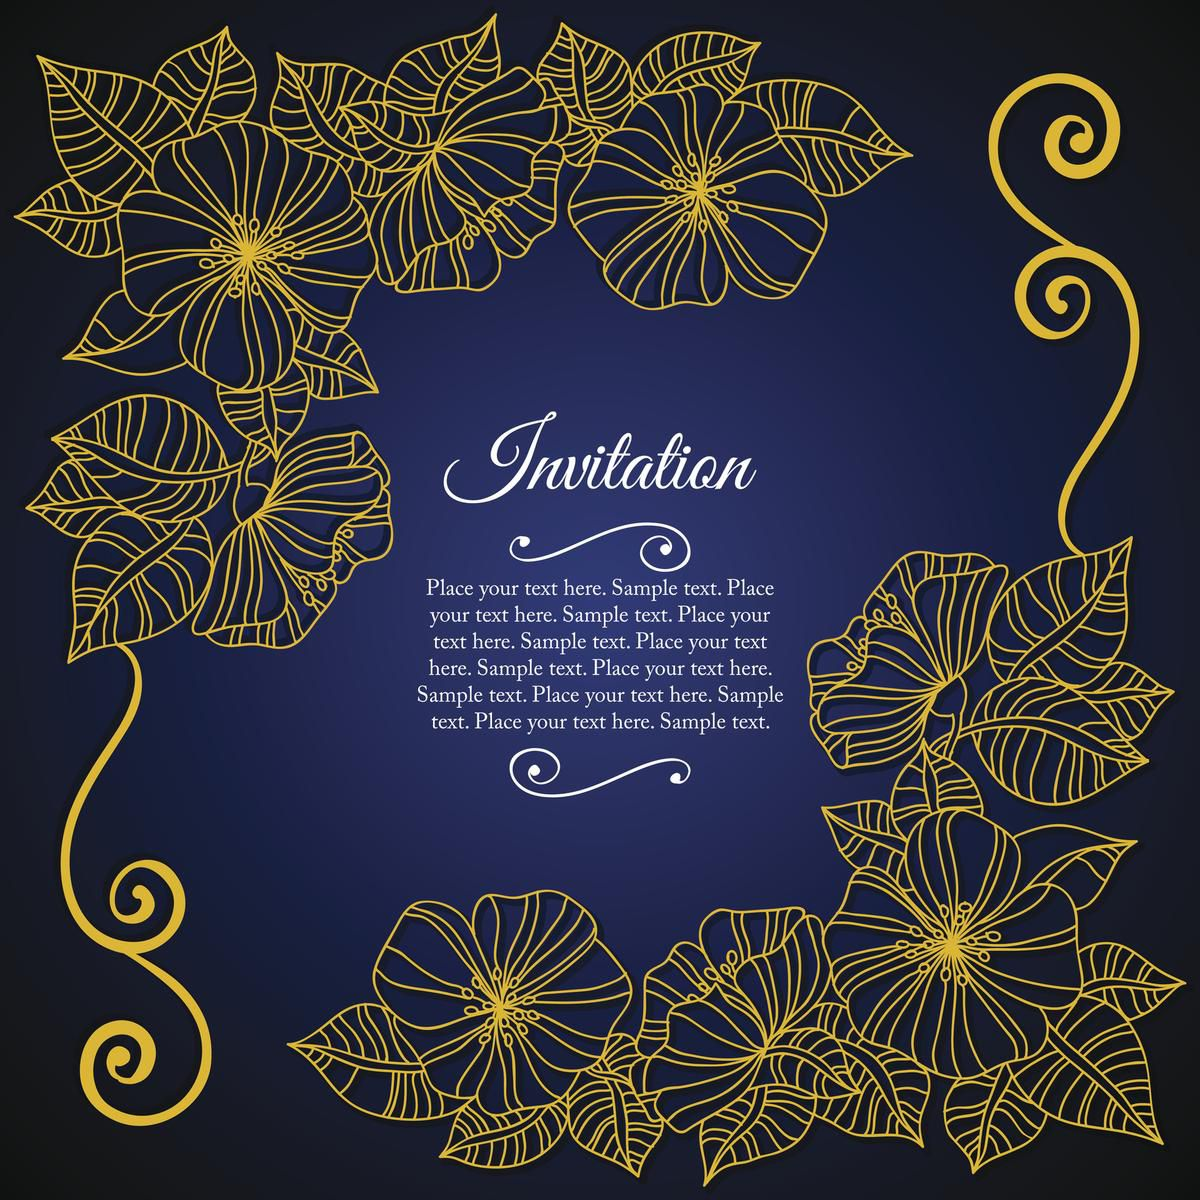 003 Staggering 50th Anniversary Invitation Wording Sample Concept  Samples Wedding CardFull